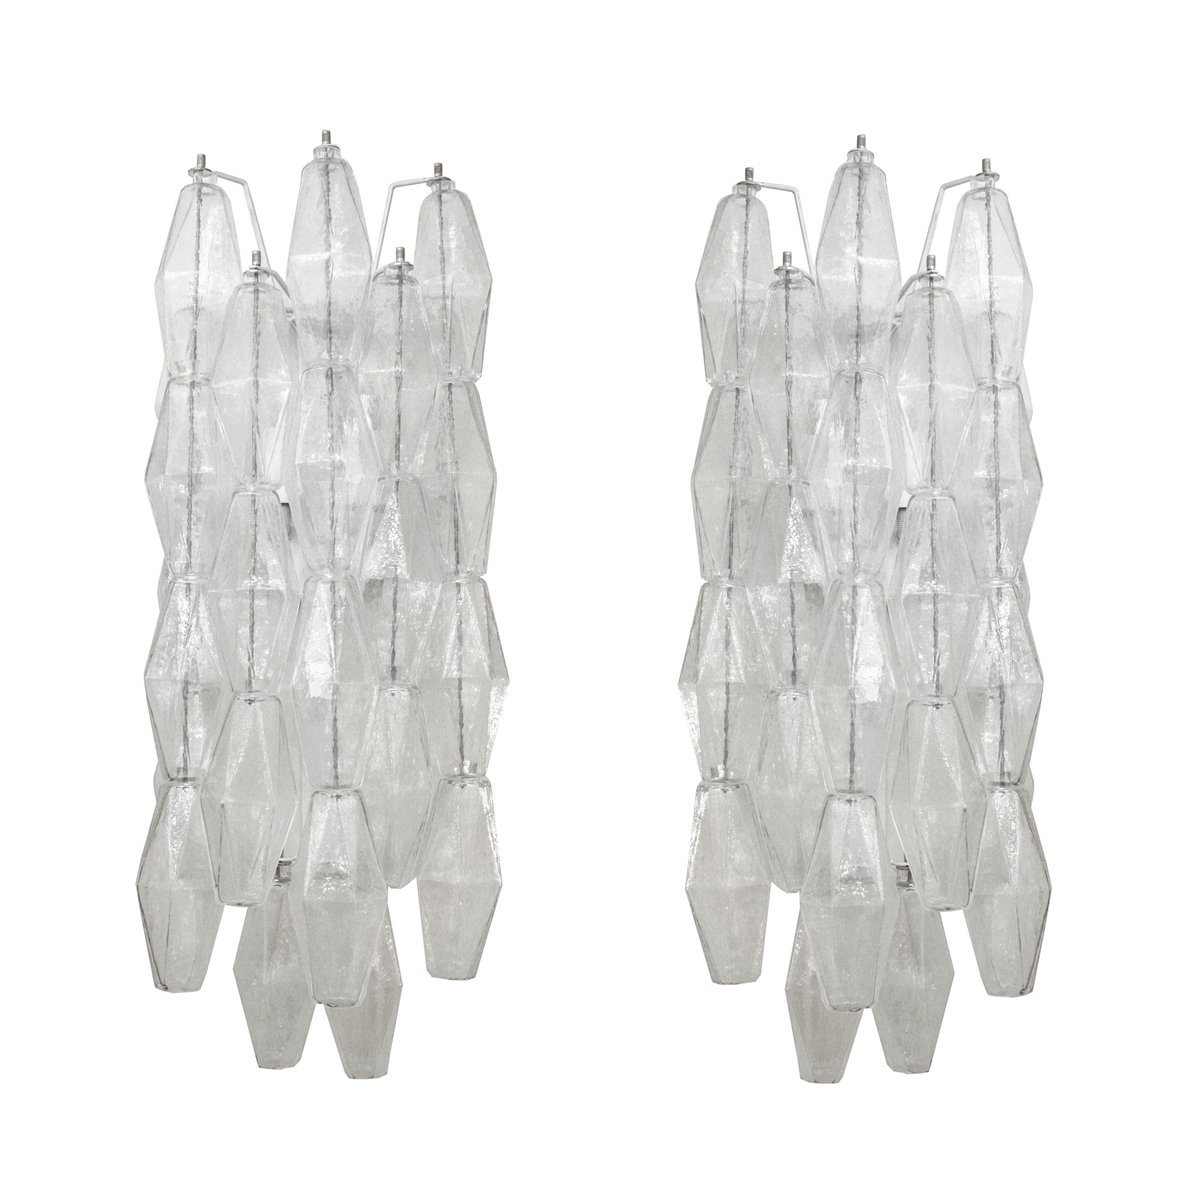 Vintage Poliedri Wall Sconces by Carlo Scarpa for Venini, Set of 2